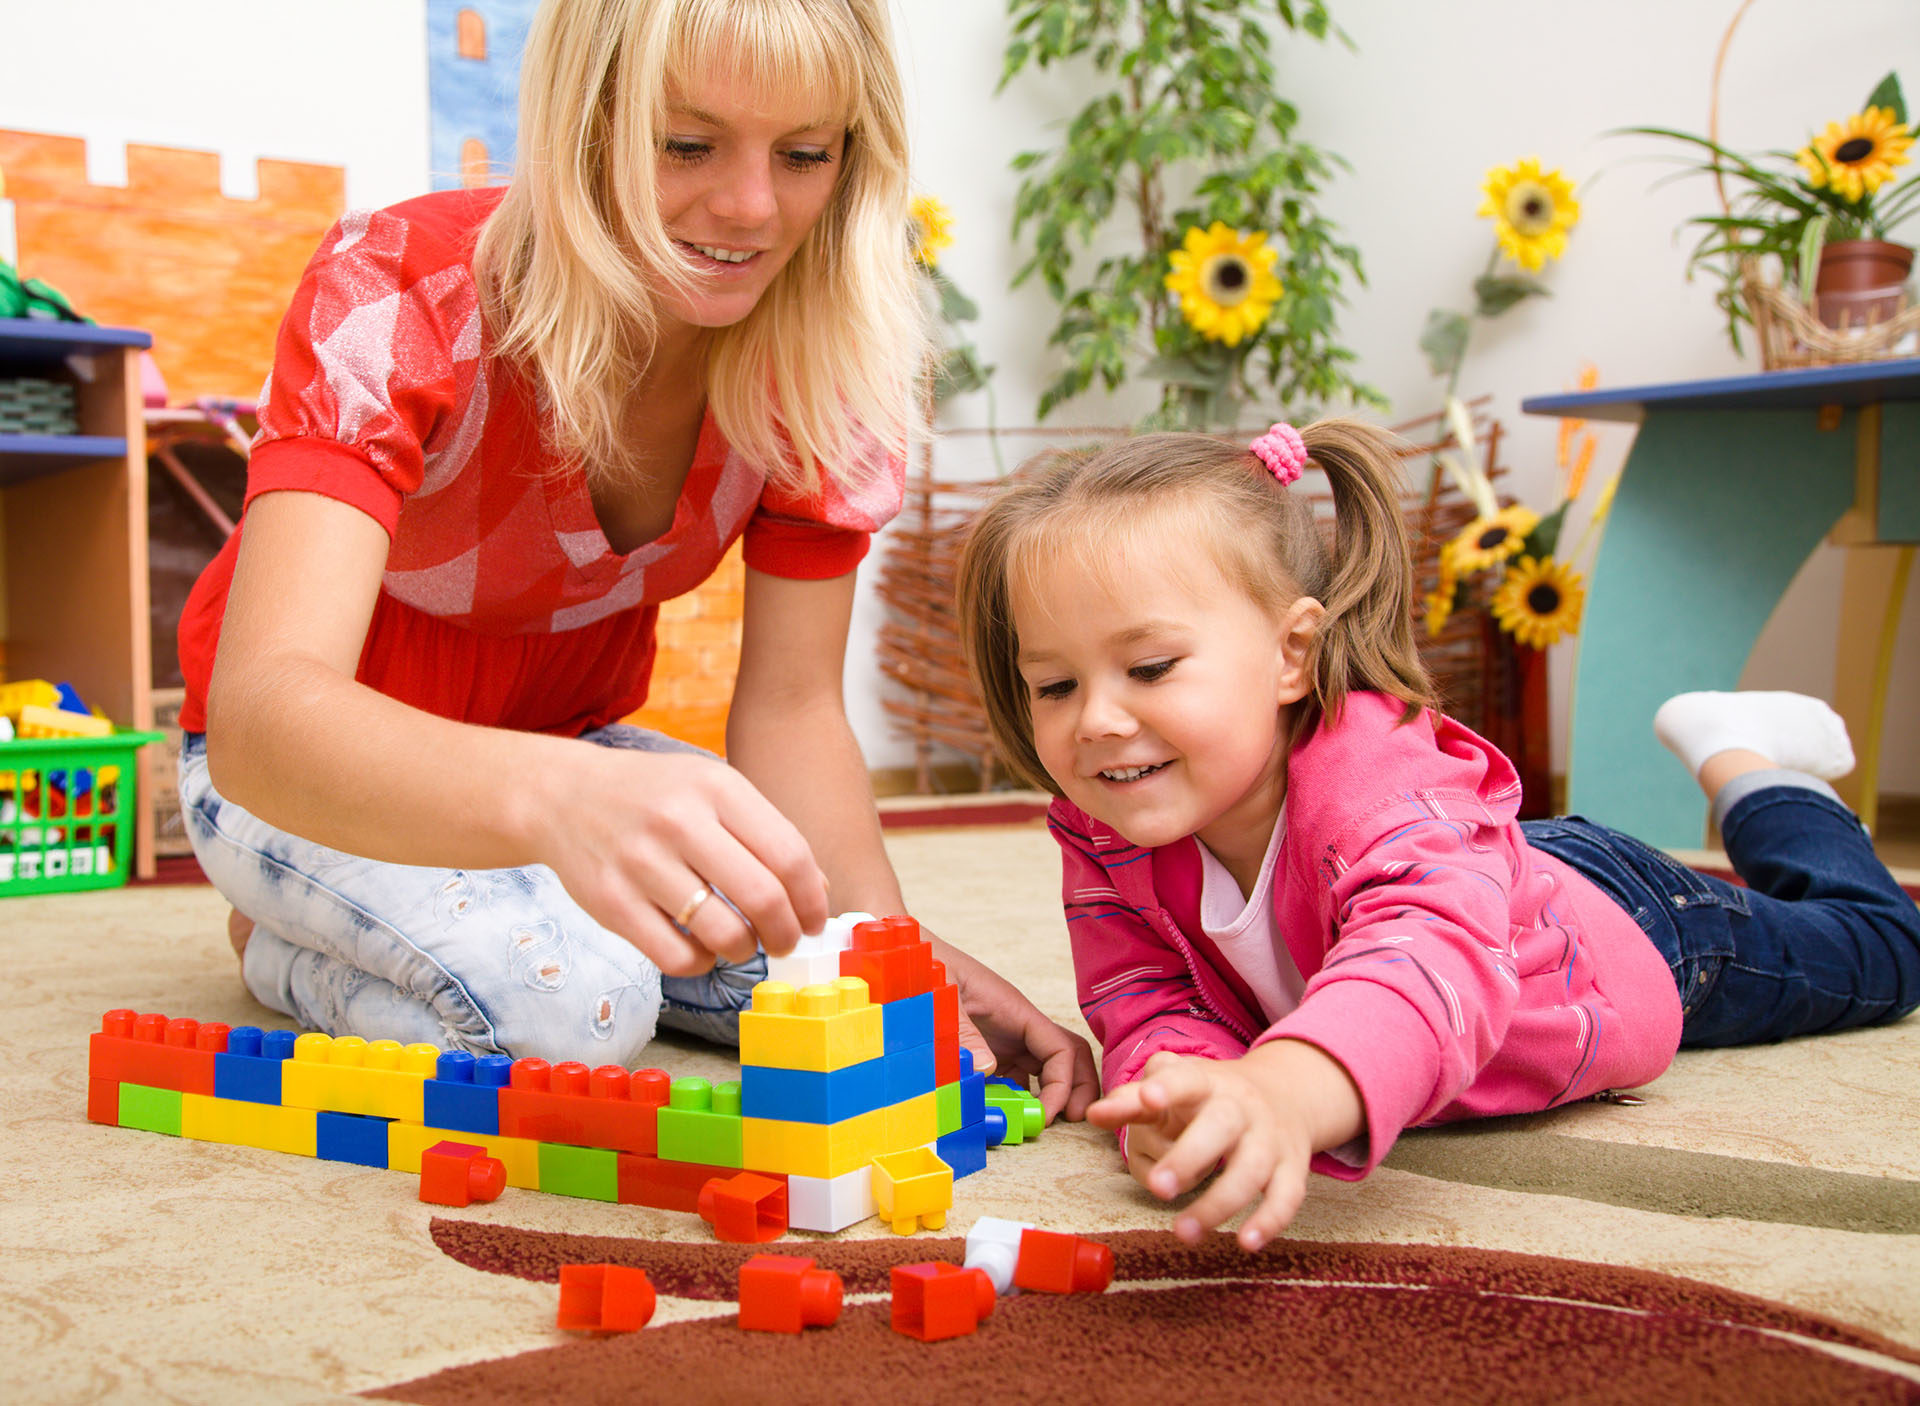 What is '30 hours free childcare' and will it be available in Northern Ireland?